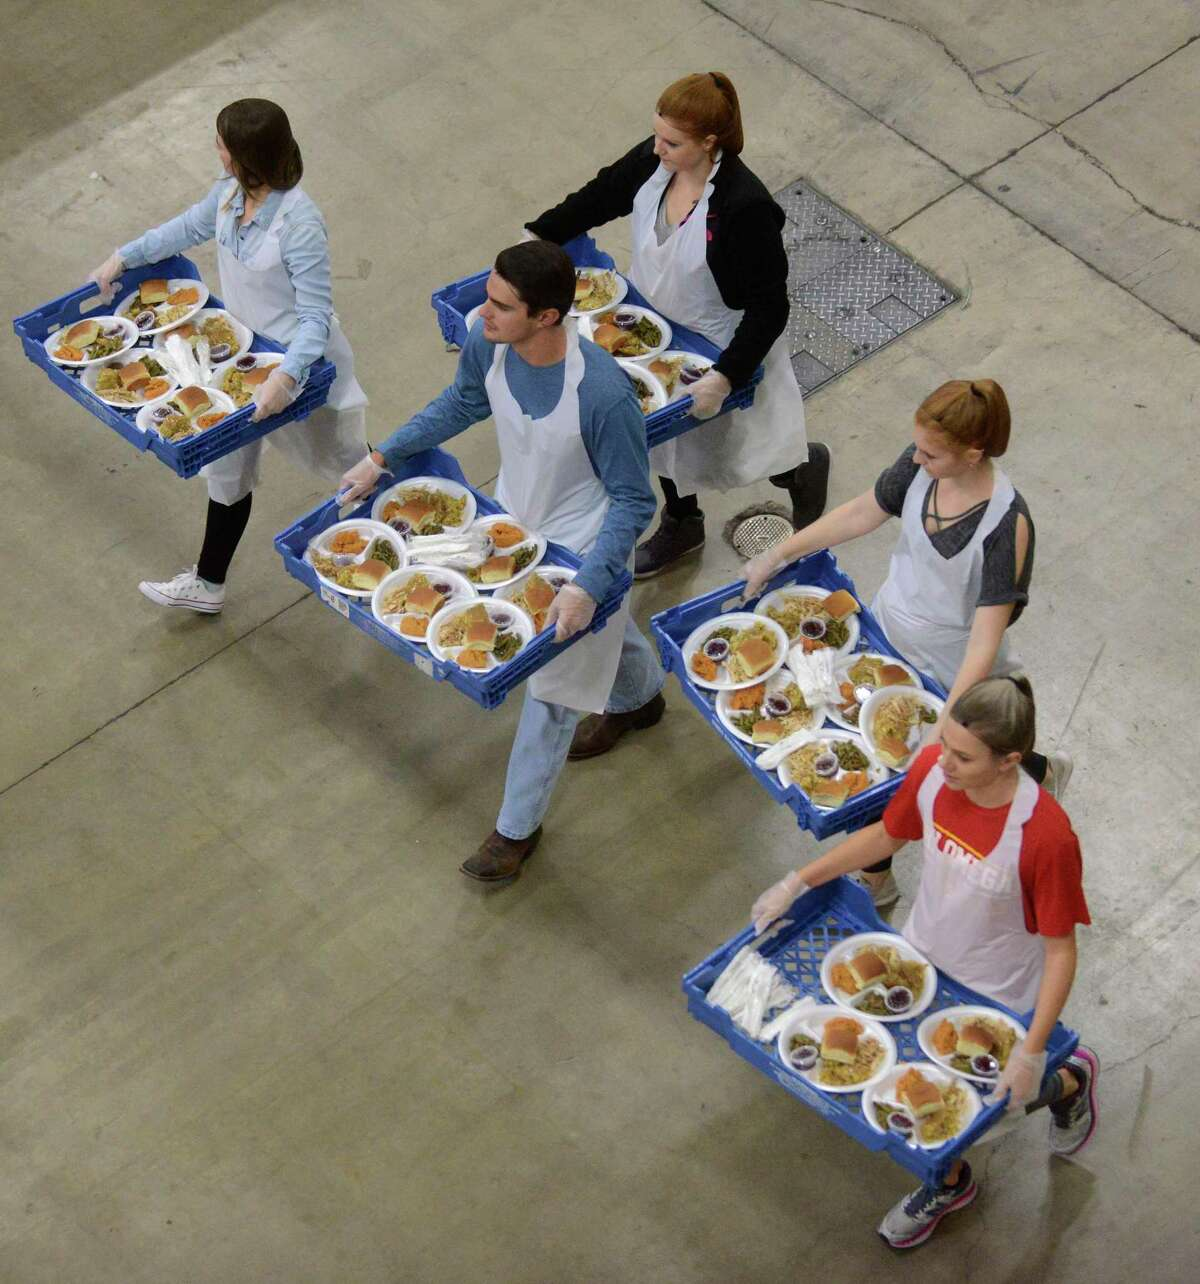 Volunteers carry plates at the Raul Jimenez Thanksgiving Dinner in 2017 at the Henry B. Gonzalez Convention Center.